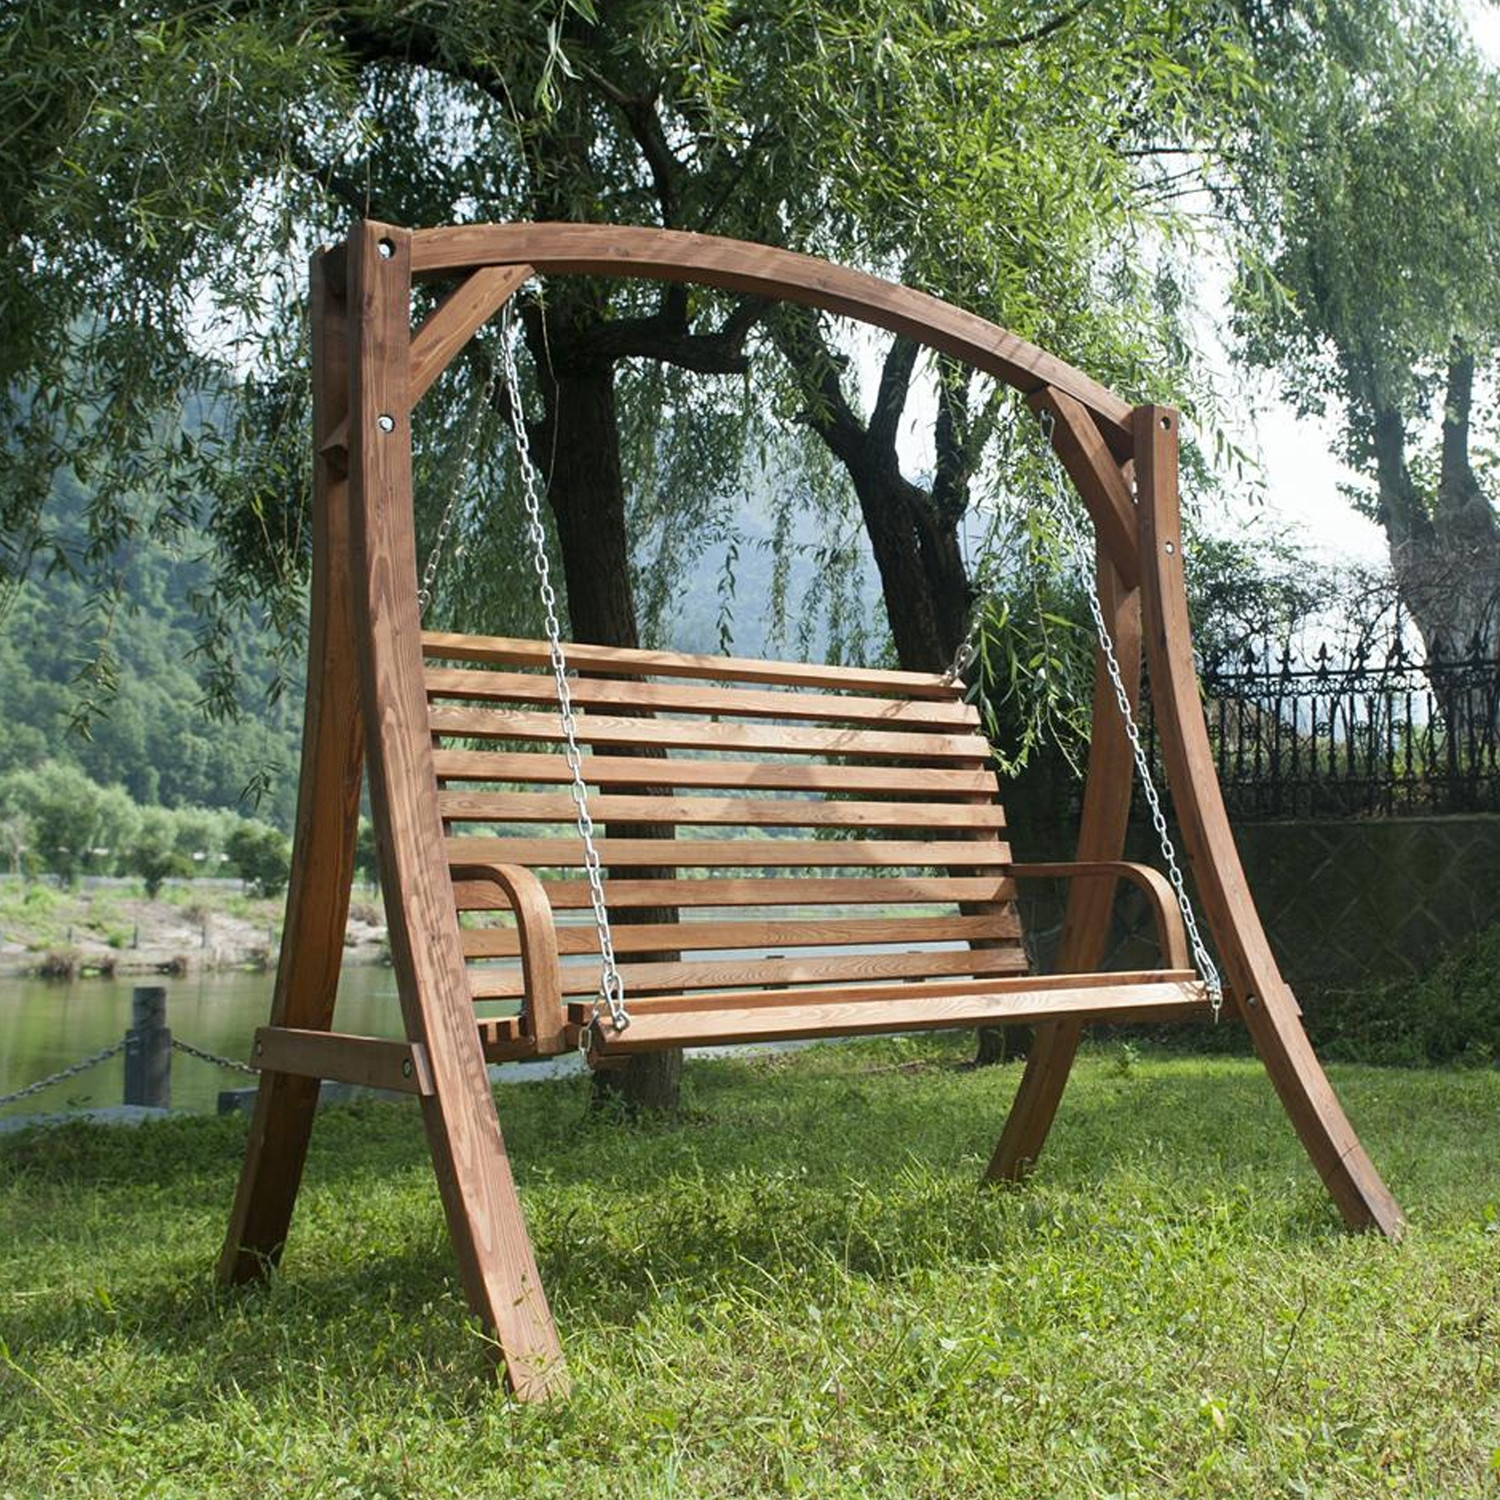 Image of: Patio Swing Chair With Stand Lukhq Cnxconsortium Outdoor In Wooden Garden Swing Seats Outdoor Furniture Fun Wooden Garden Swing Seats Outdoor Furniture